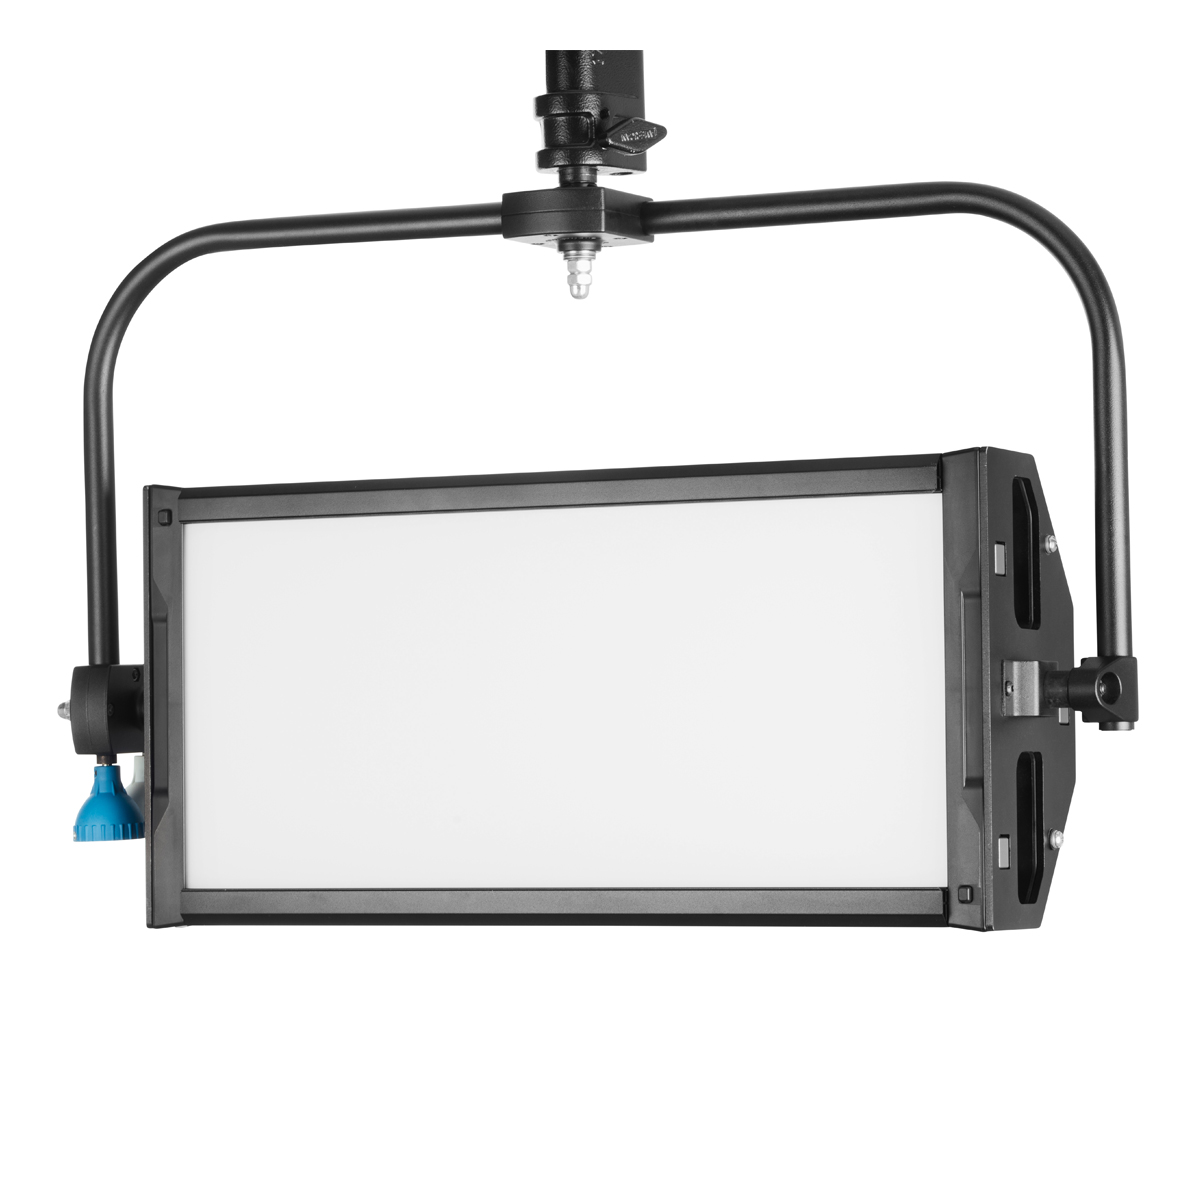 Gemini 2x1 Soft RGBWW LED Panel (Pole-Operated Yoke, US Power Cable)